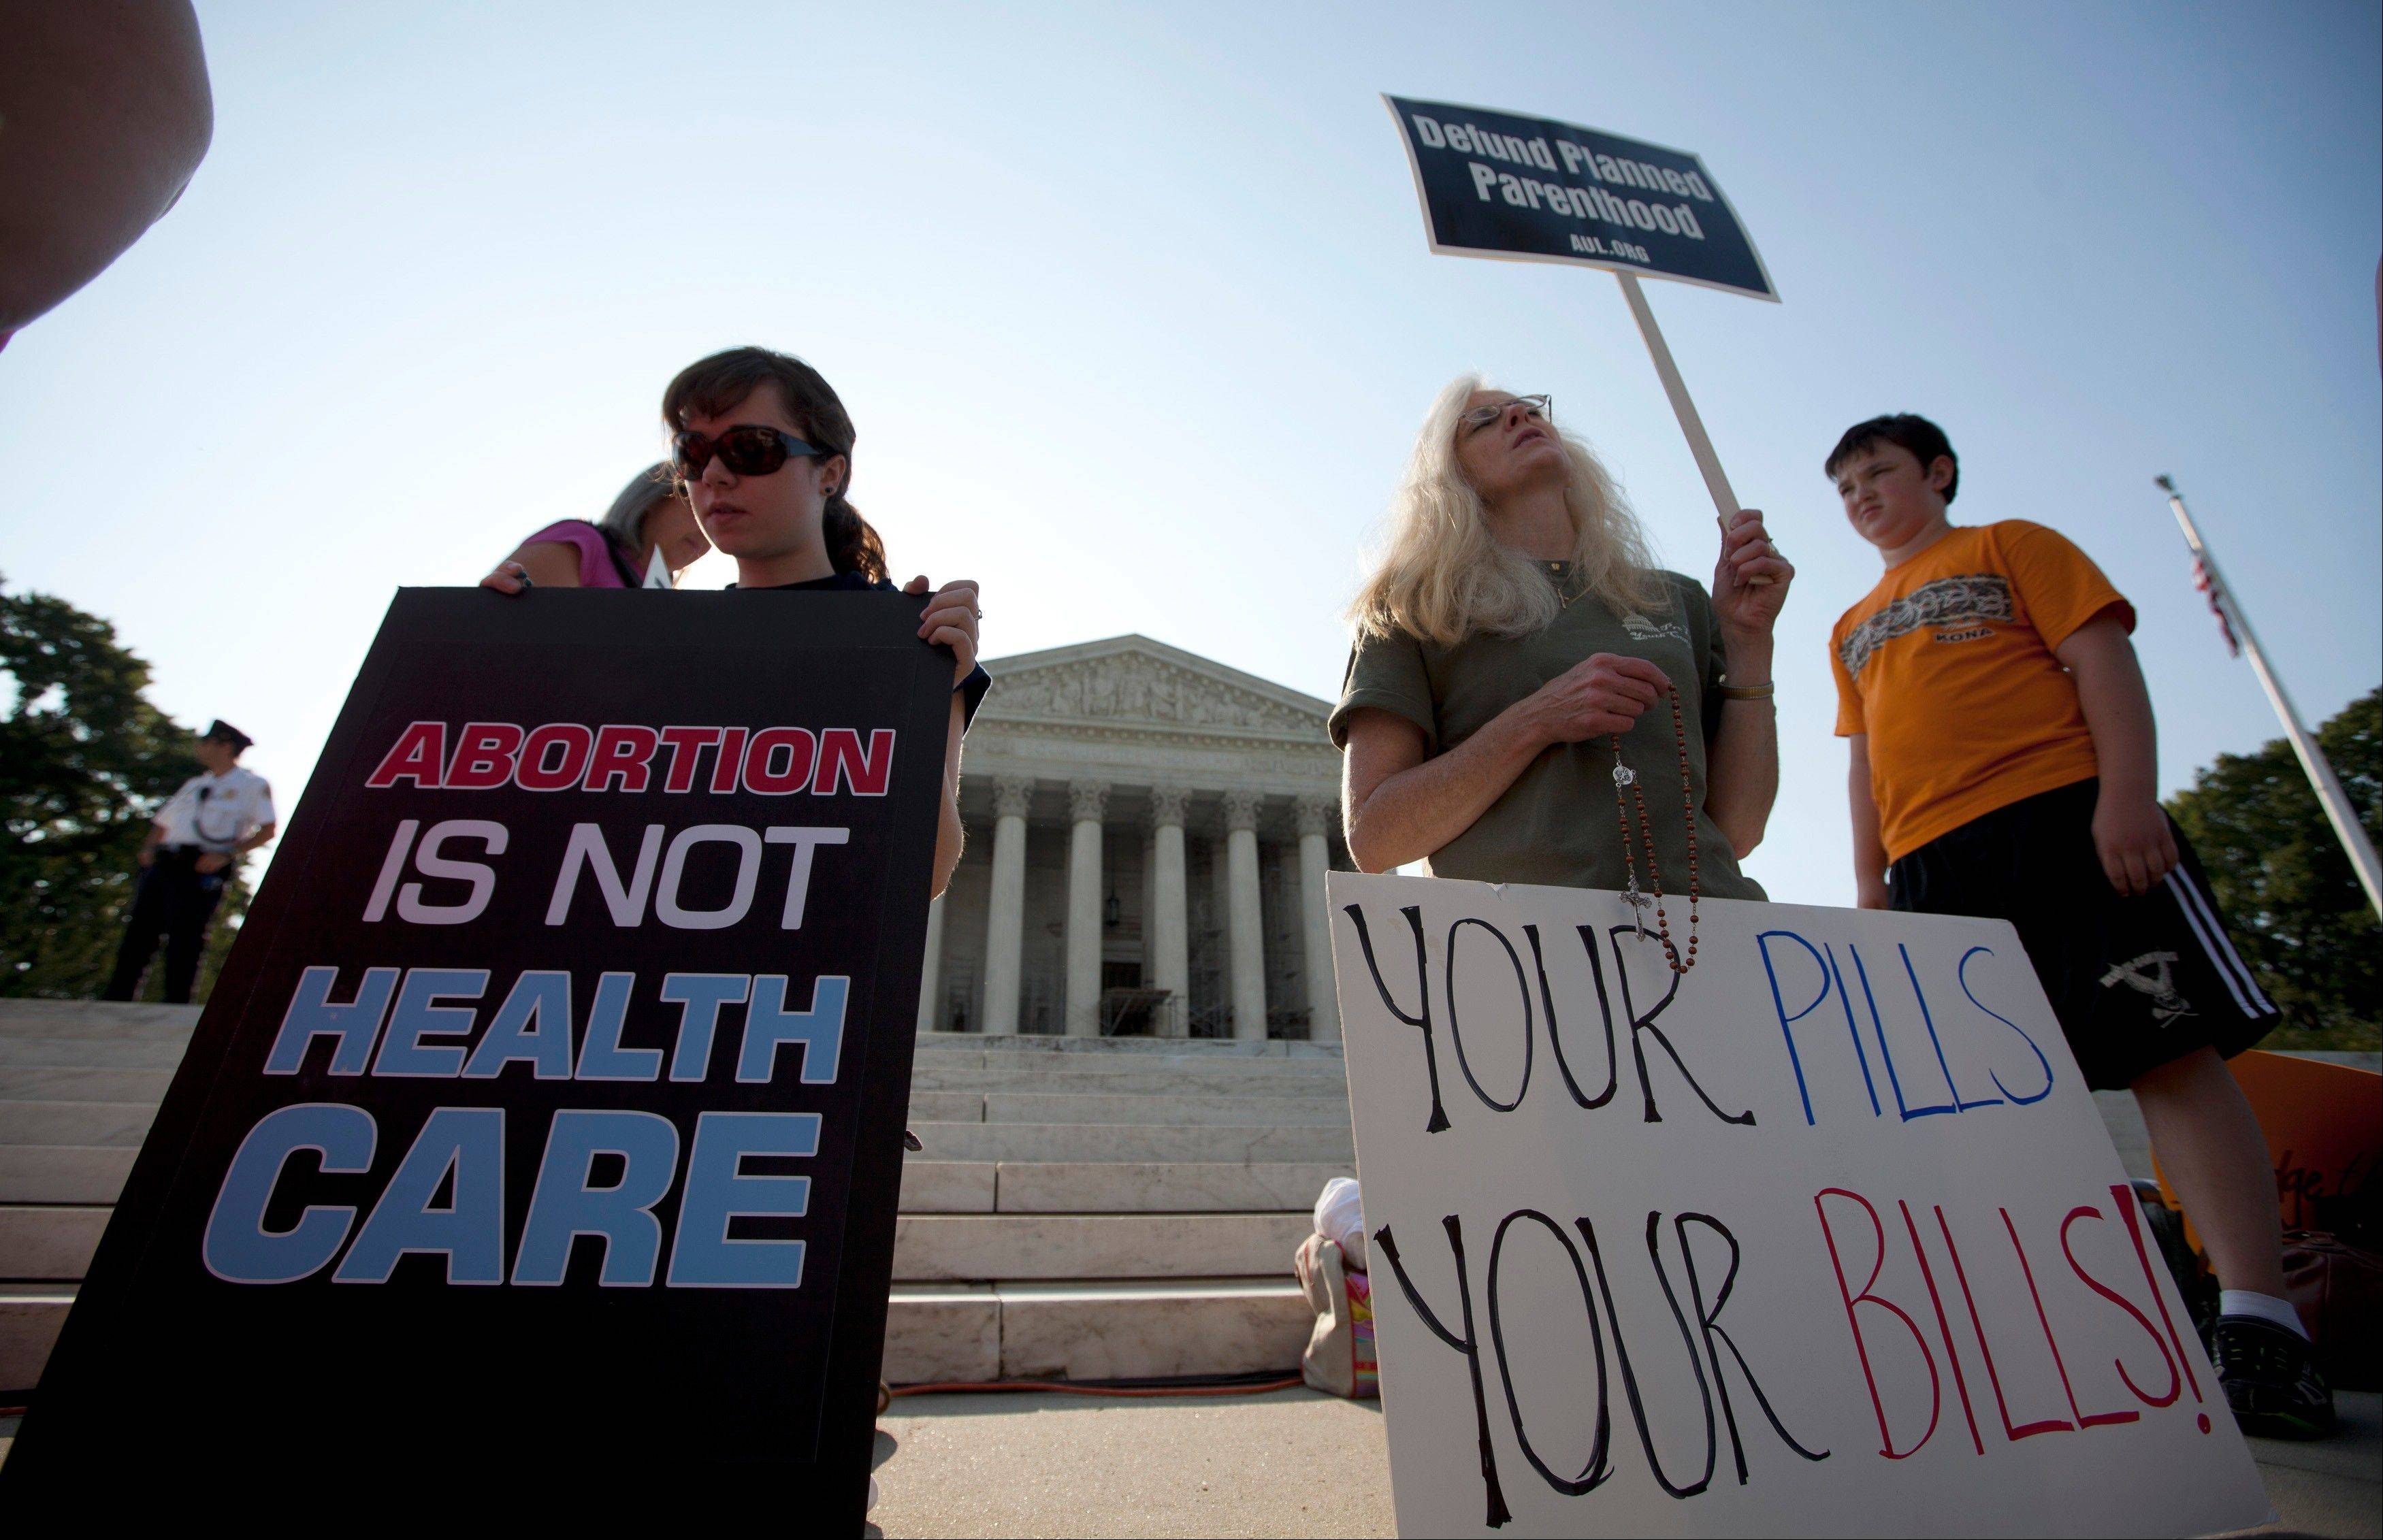 Demonstrators pray outside the Supreme Court in Washington, Thursday, June 28, 2012, before a landmark decision on health care.